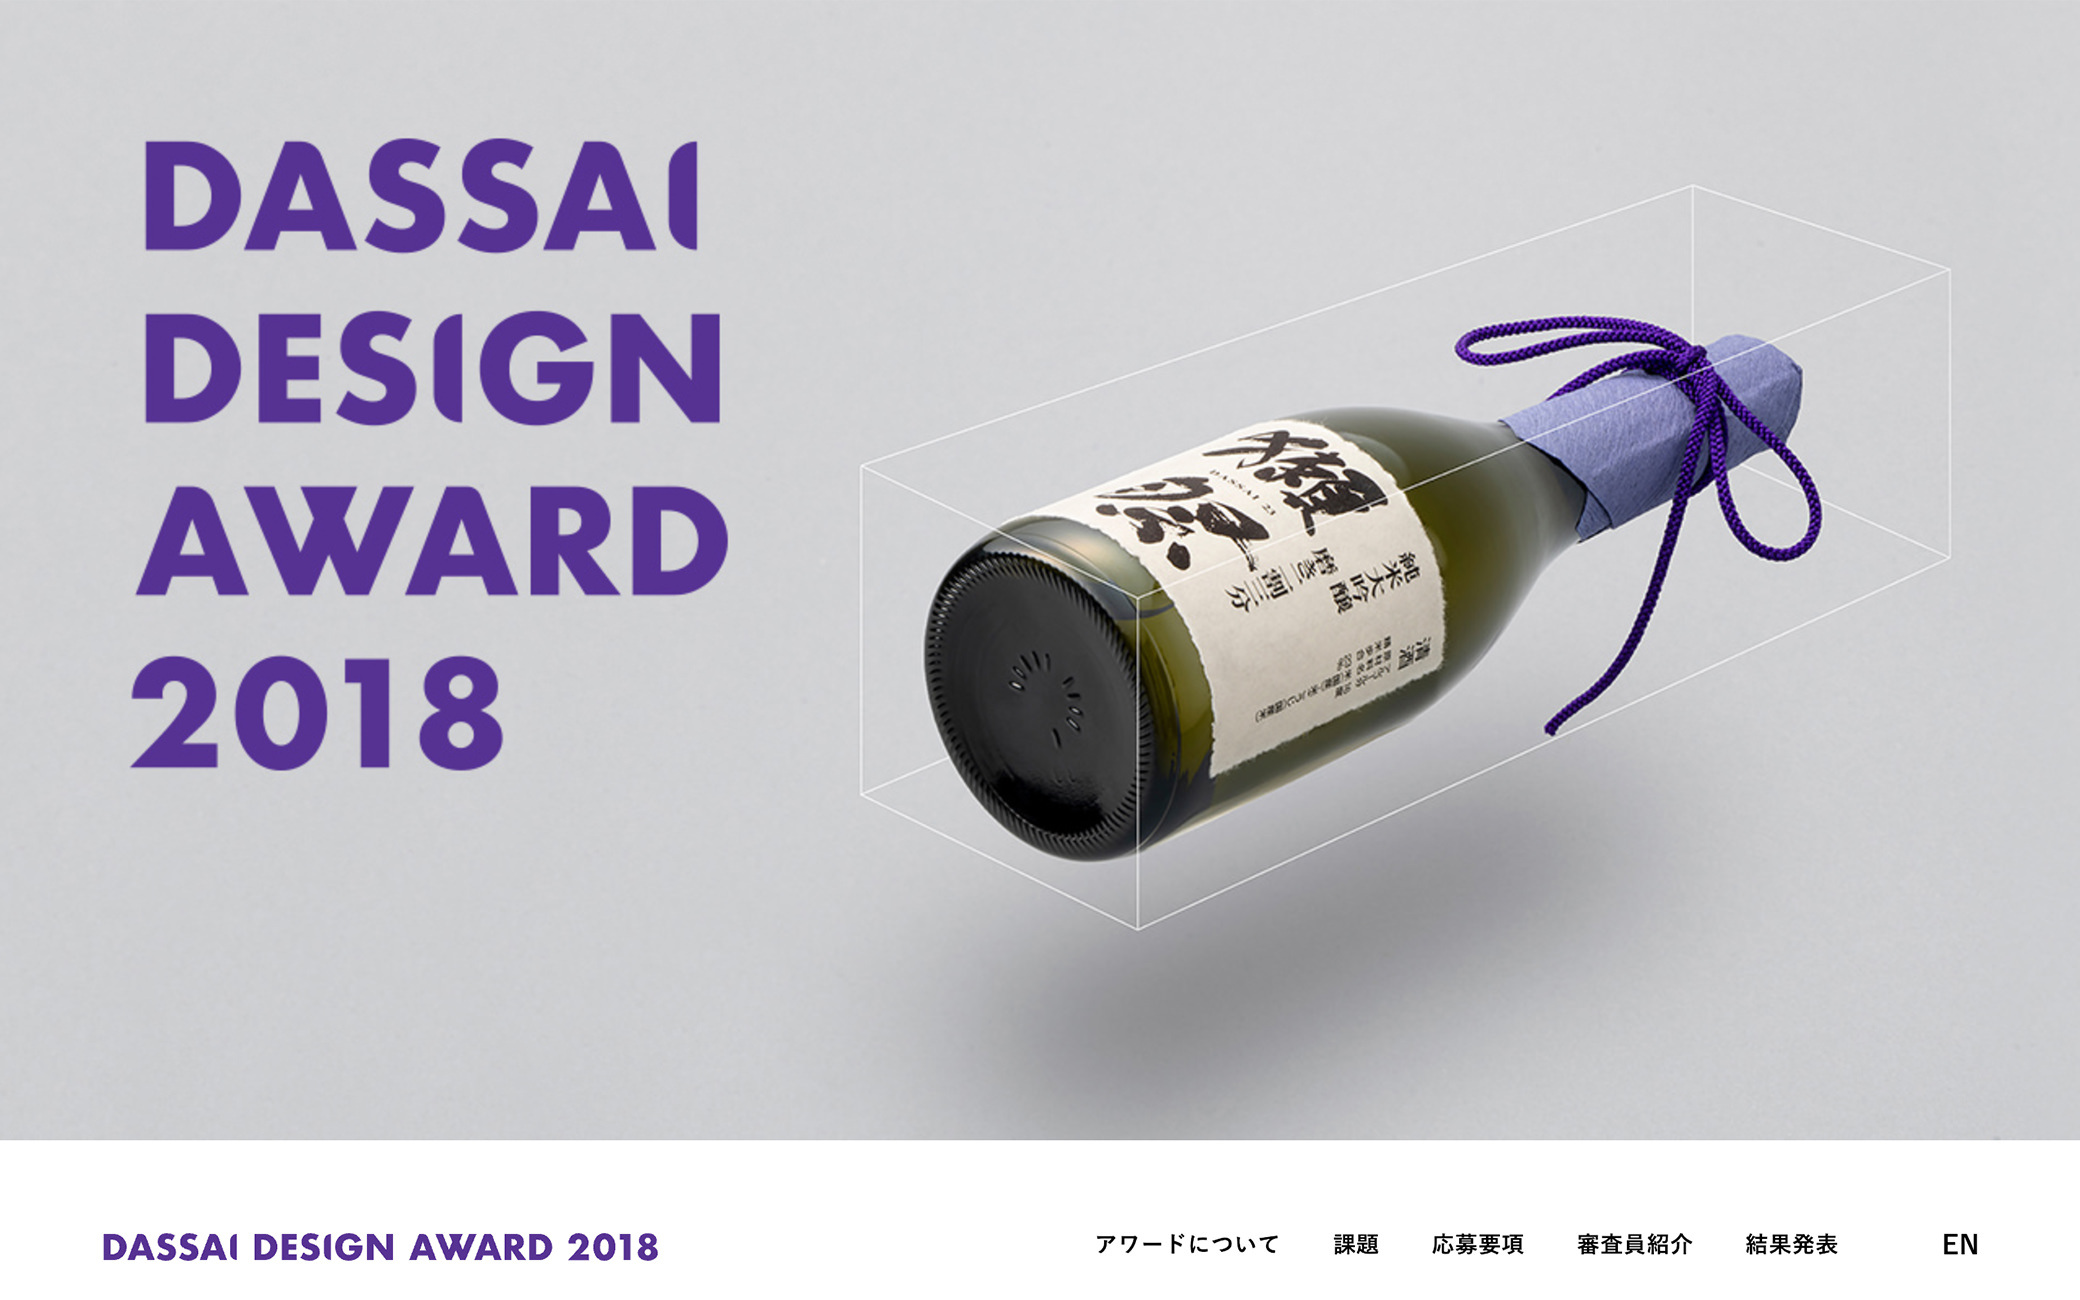 DASSAI DESIGN AWARD